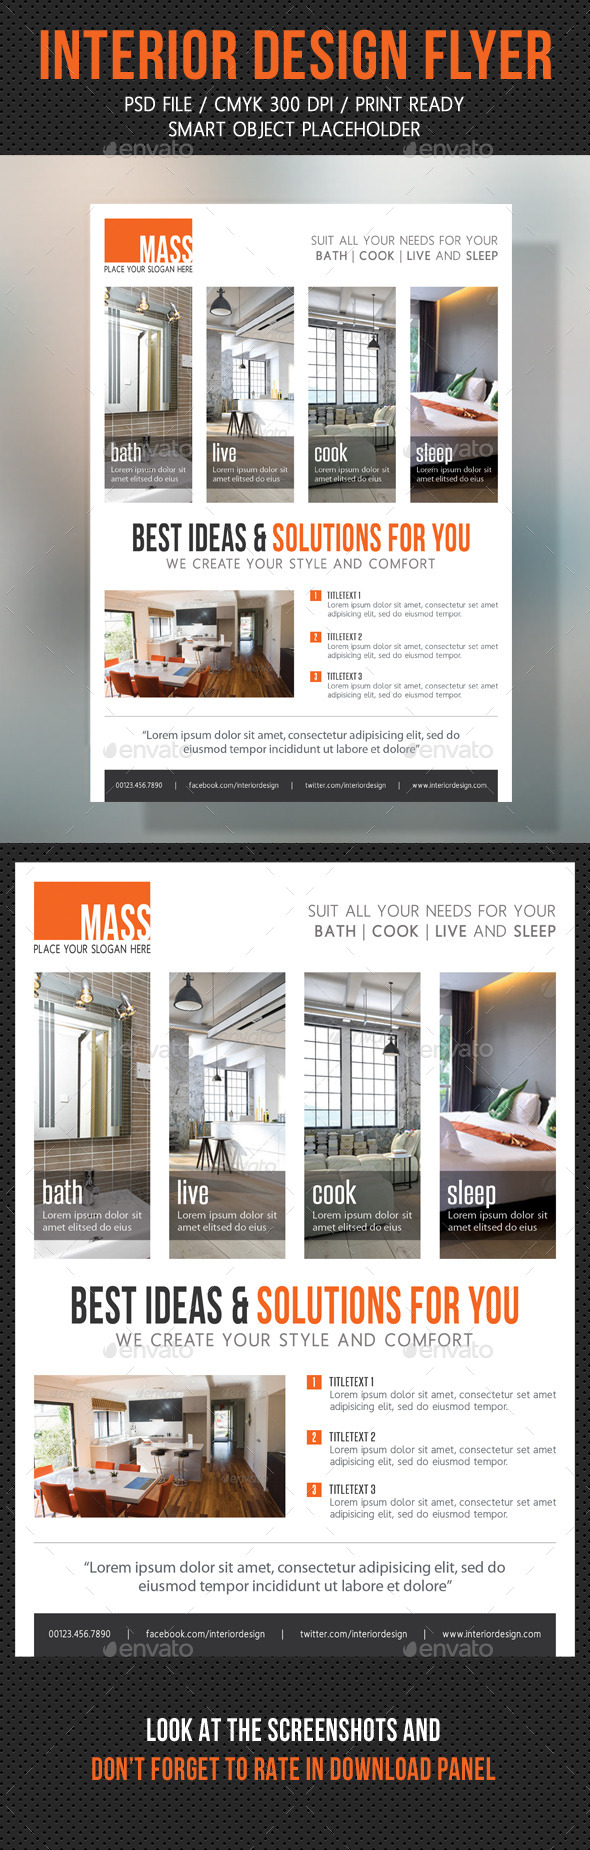 Interior Design Flexible Flyer V02 - Corporate Flyers